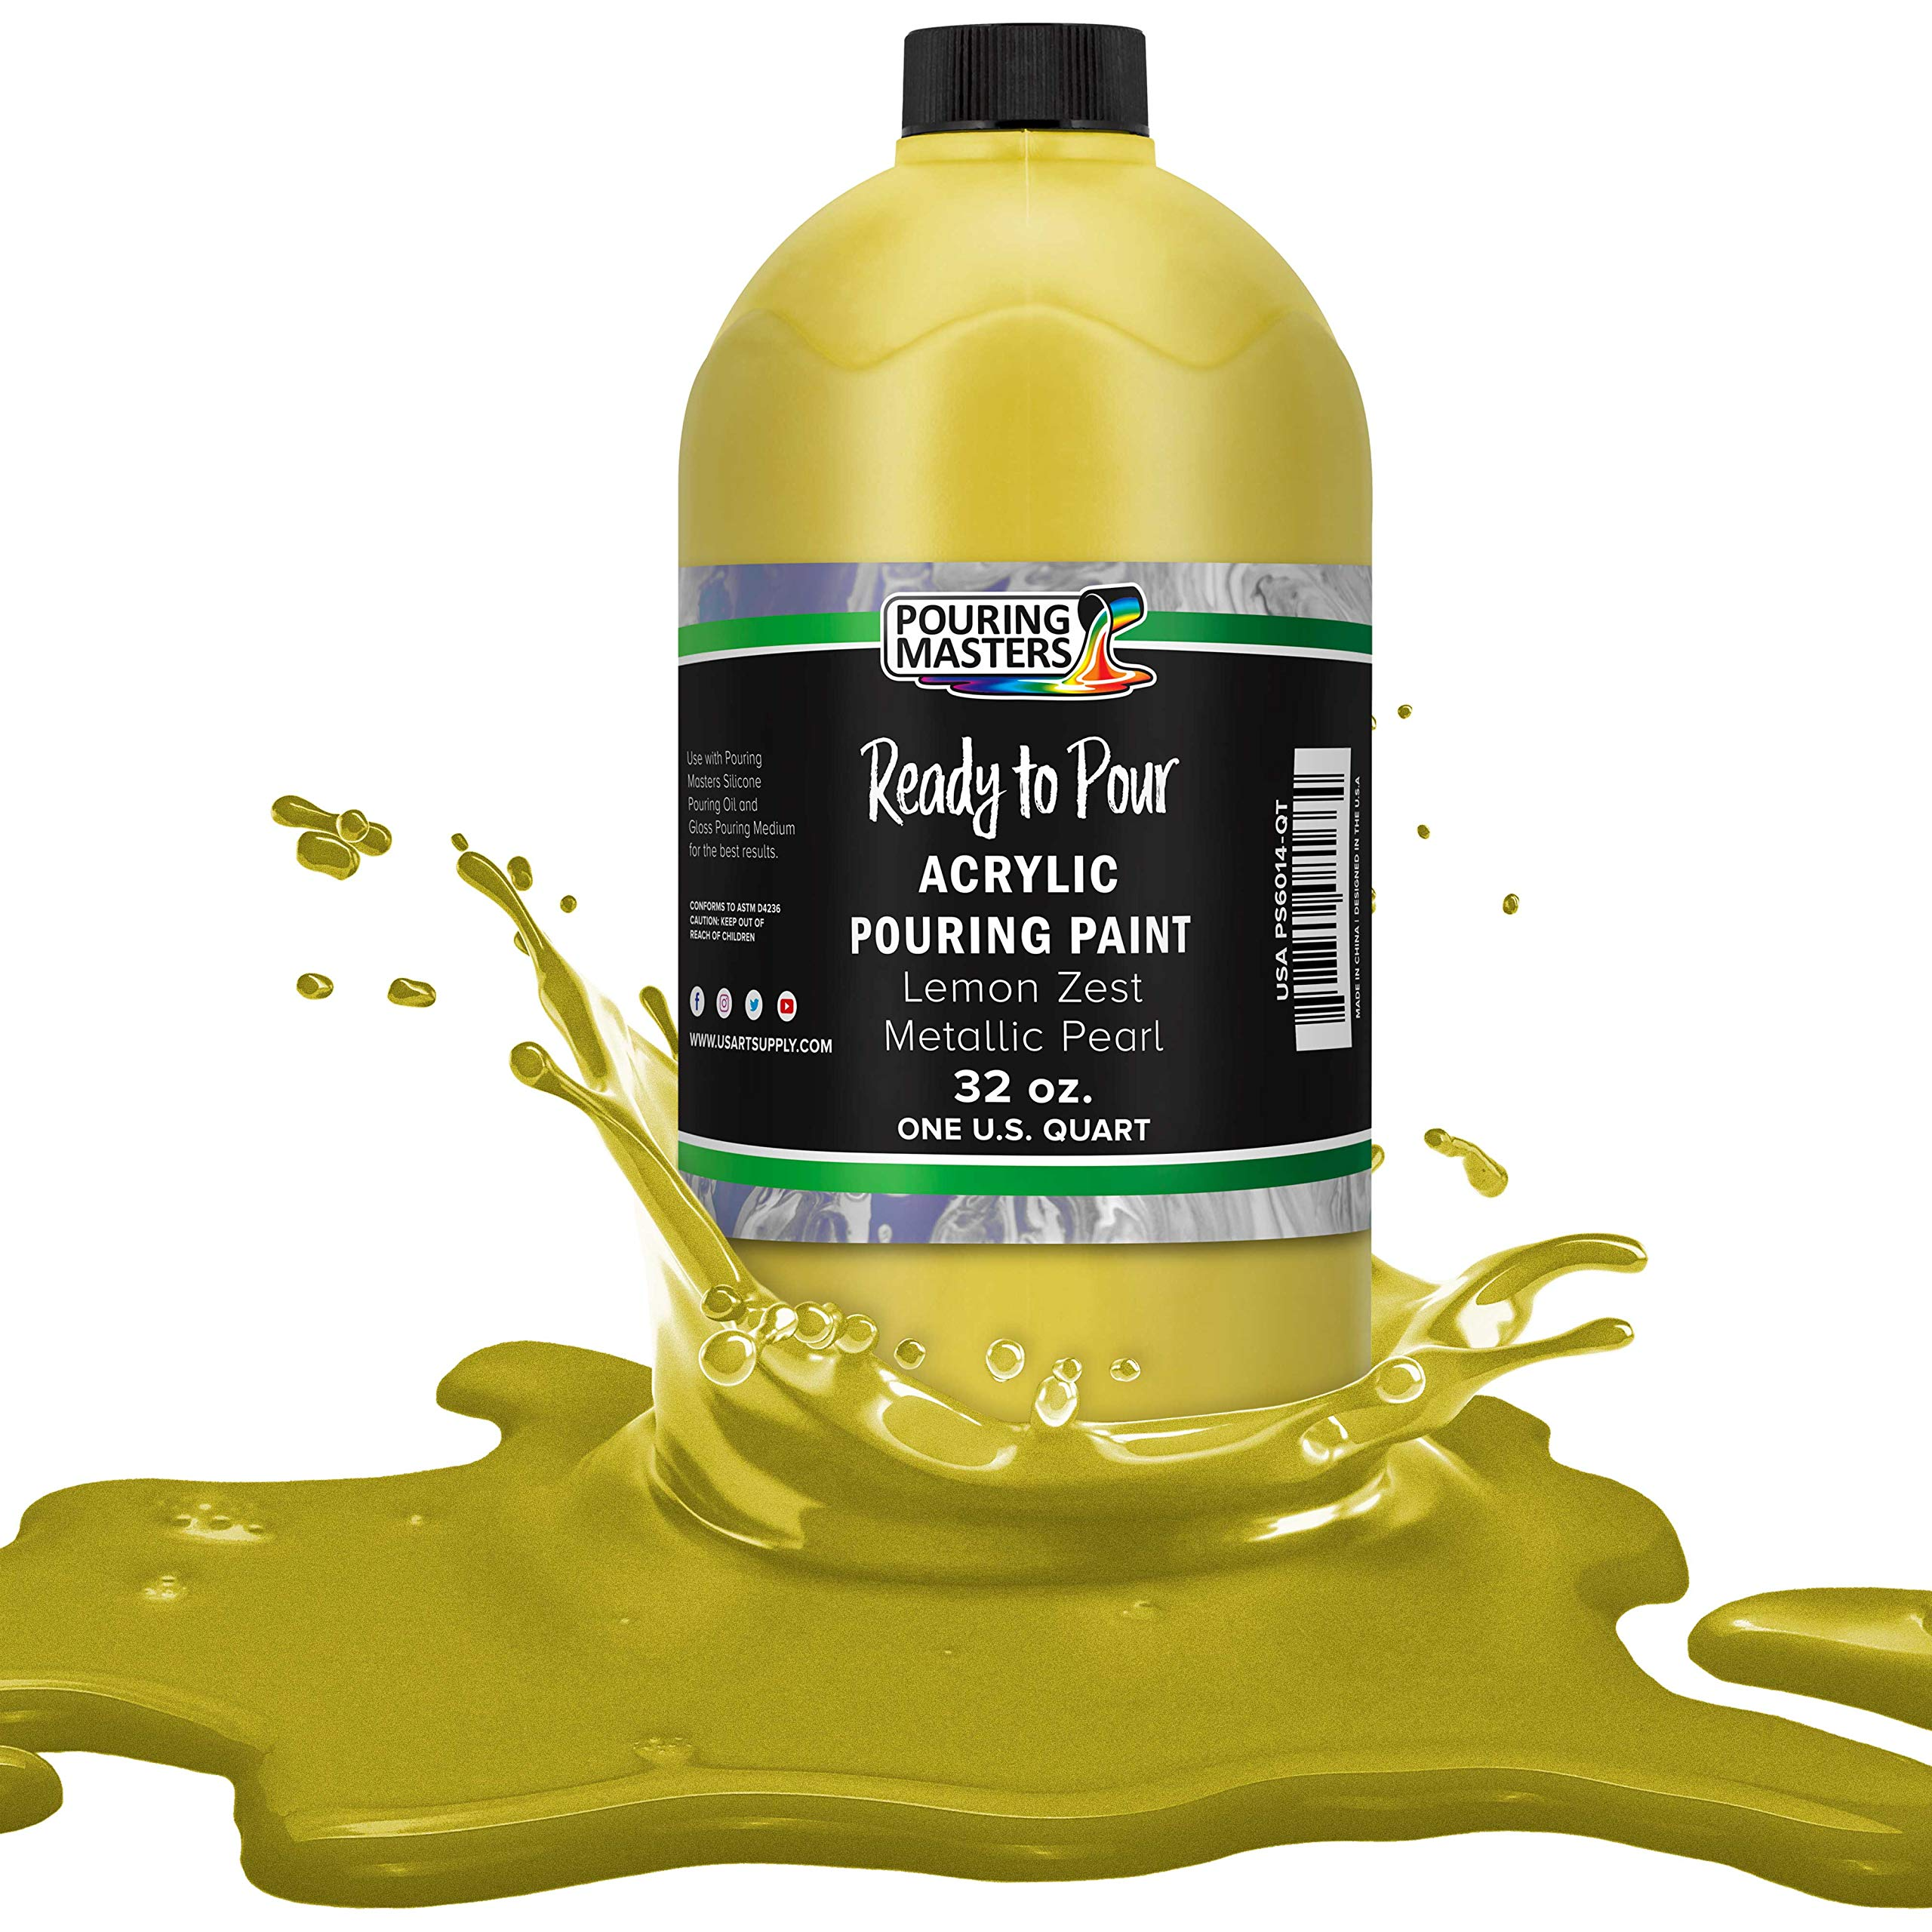 Pouring Masters Lemon Zest Metallic Pearl Acrylic Ready to Pour Pouring Paint – Premium 32-Ounce Pre-Mixed Water-Based - for Canvas, Wood, Paper, Crafts, Tile, Rocks and More